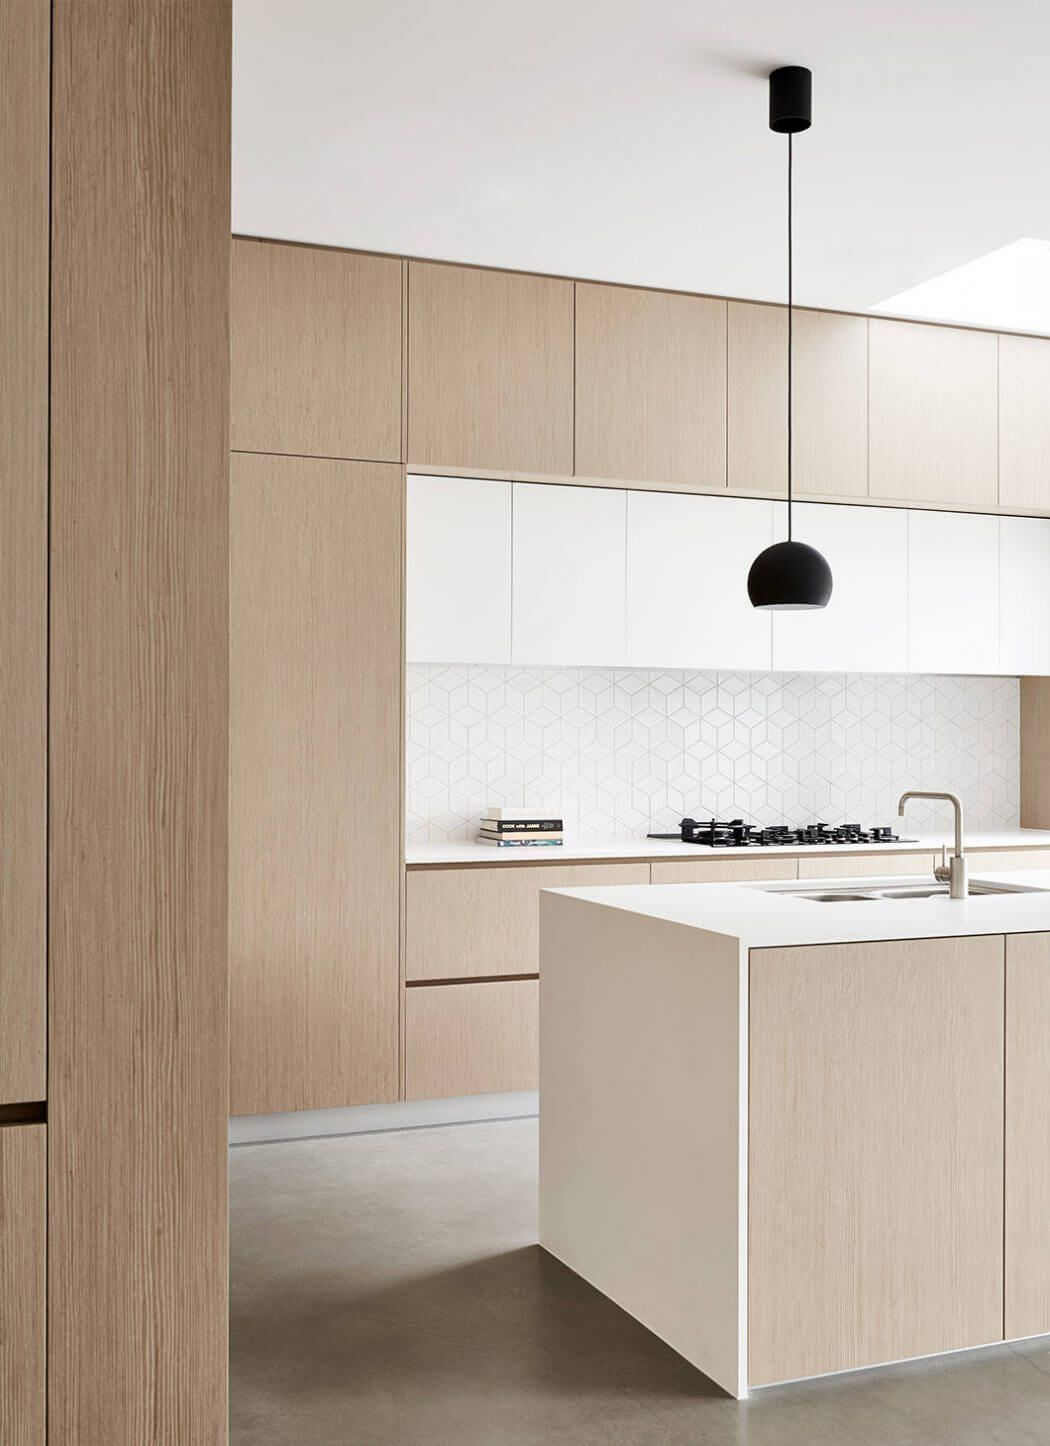 Ideas To Line Kitchen Cabinets remodelproj: Clean line kitchen   polished   remodelproj